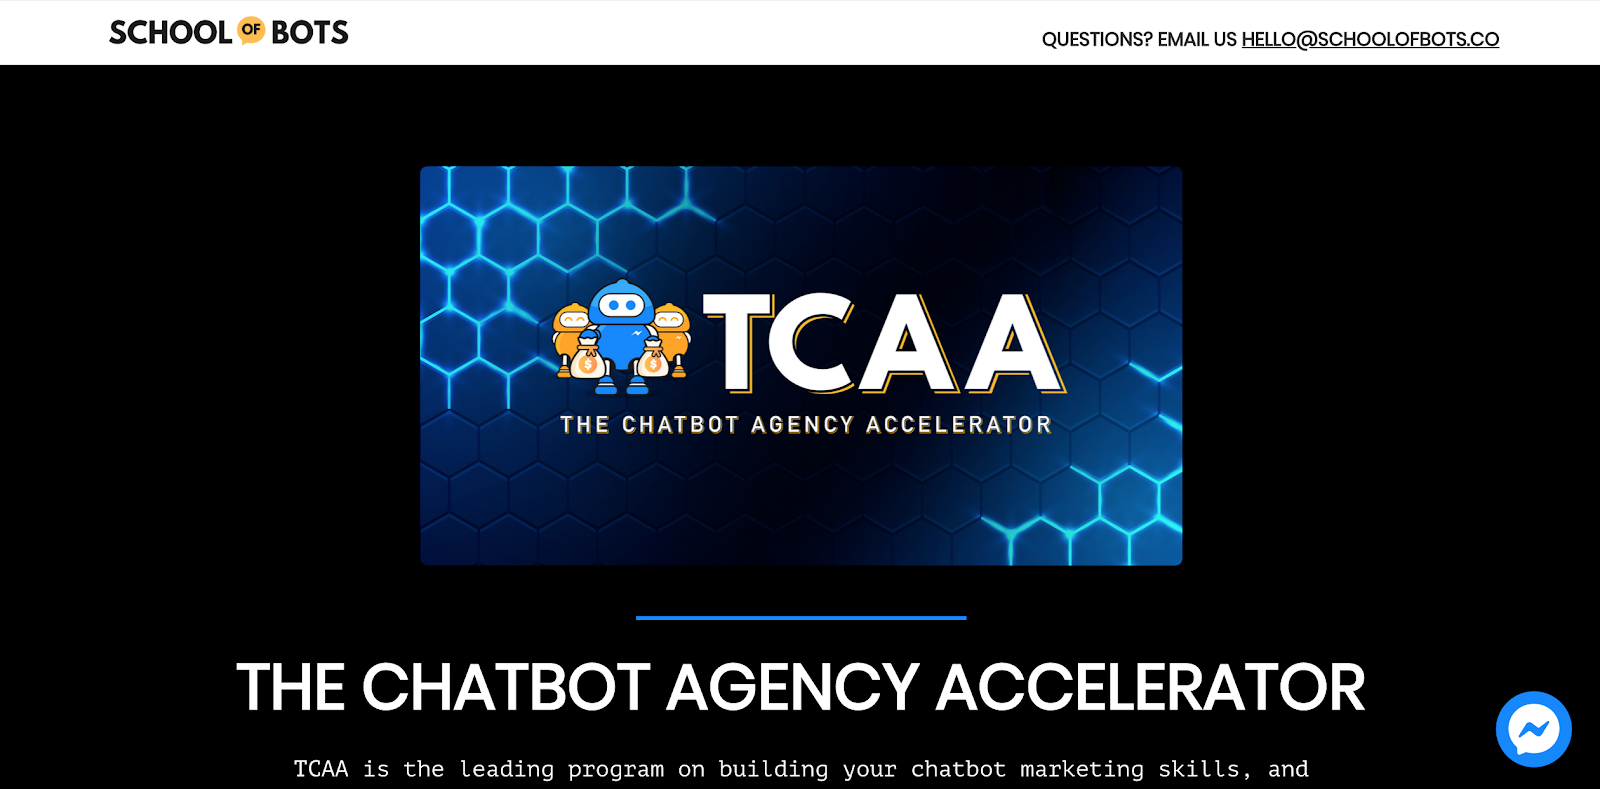 The Chatbot Agency Accelerator Course